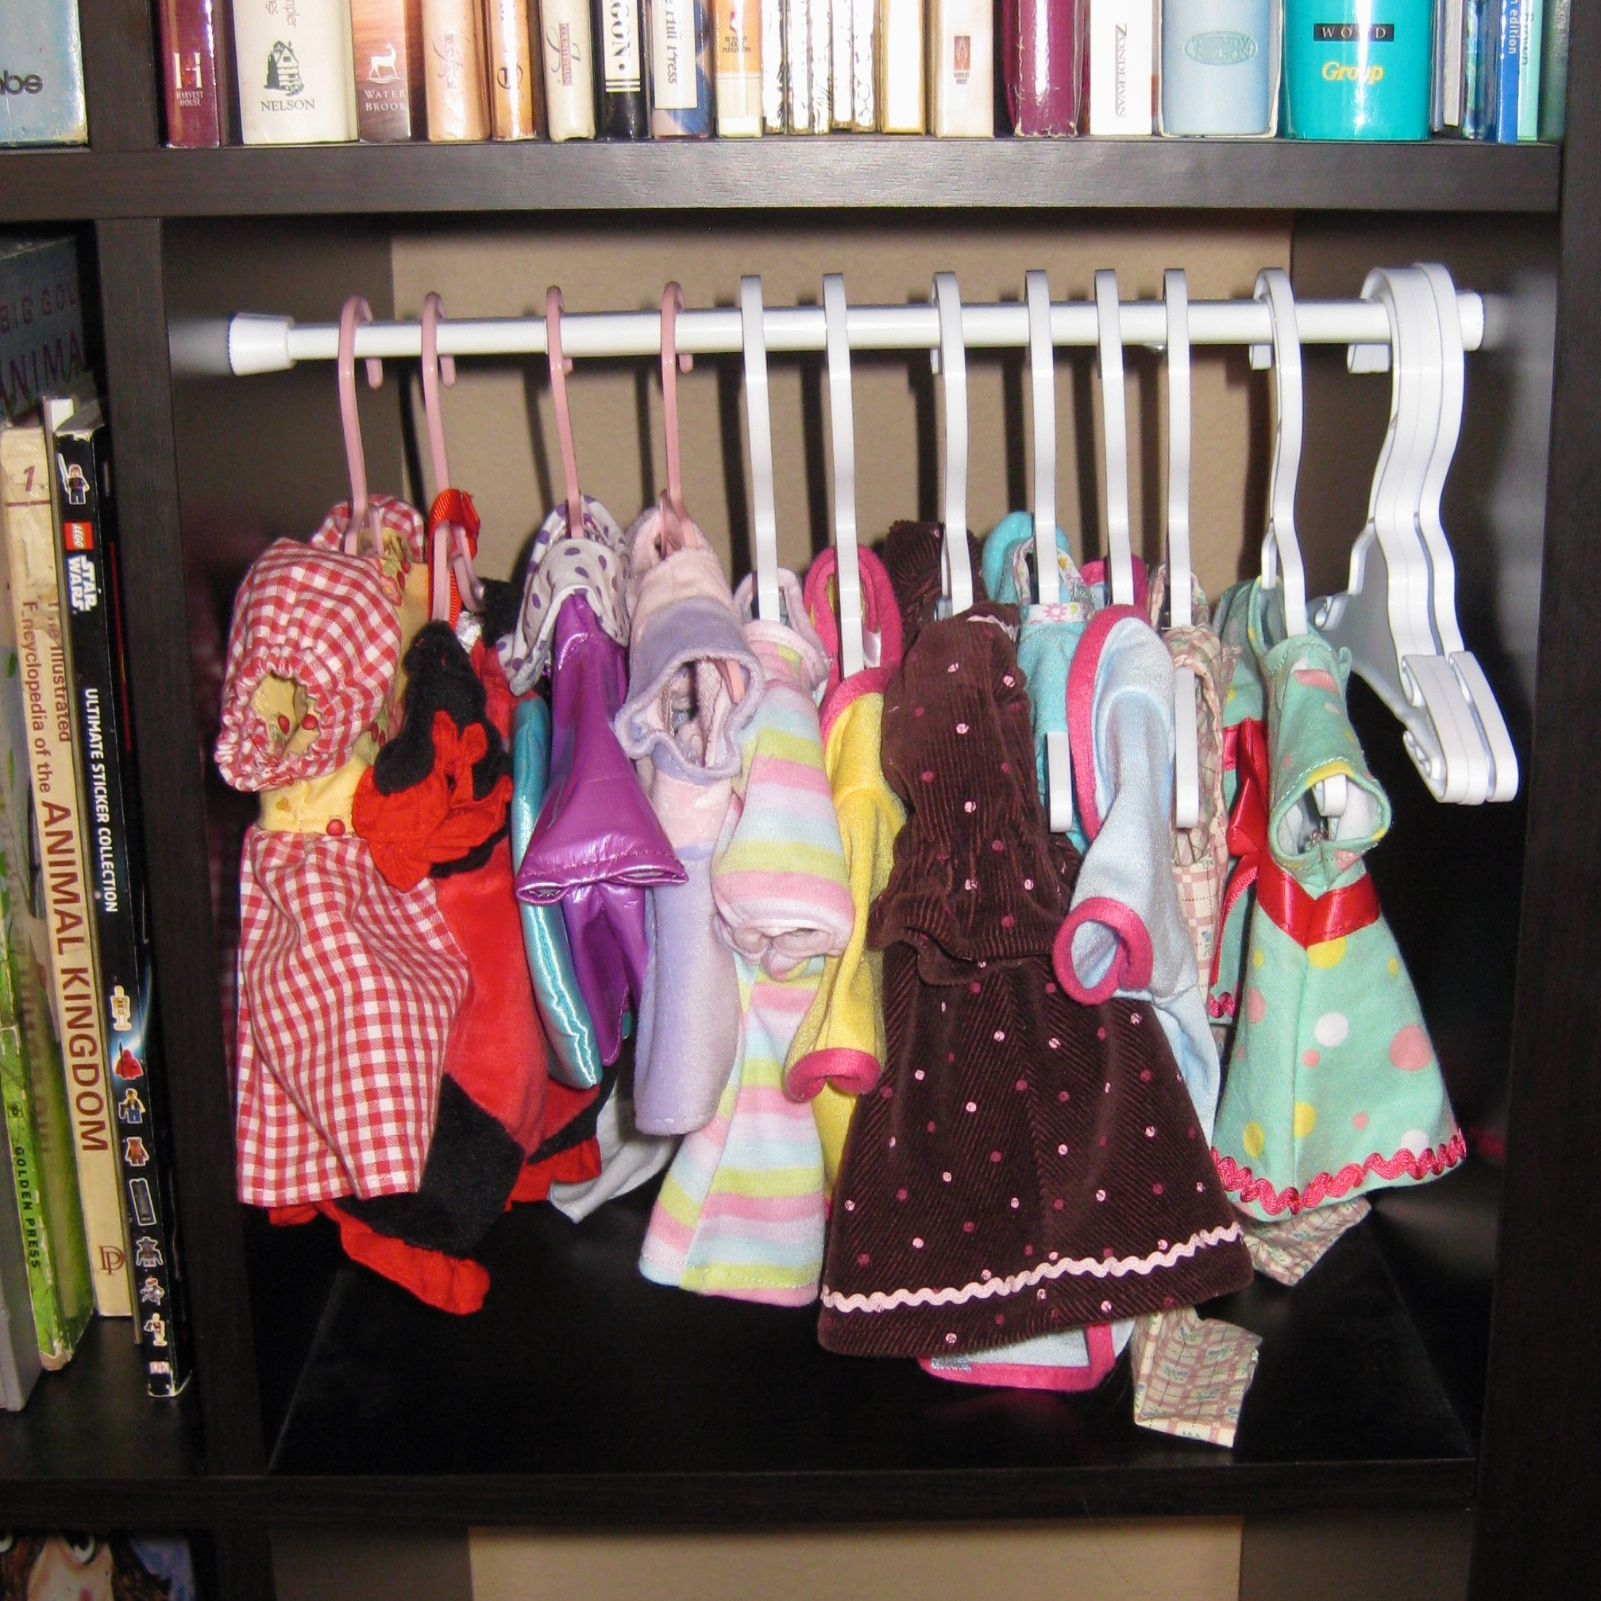 Closet For Doll Clothes In A Small Bookshelf Cubby Using A Tension Rod This Is An Expedit Bookshelf Short Tens Small Baby Nursery Small Bookshelf Diy Doll